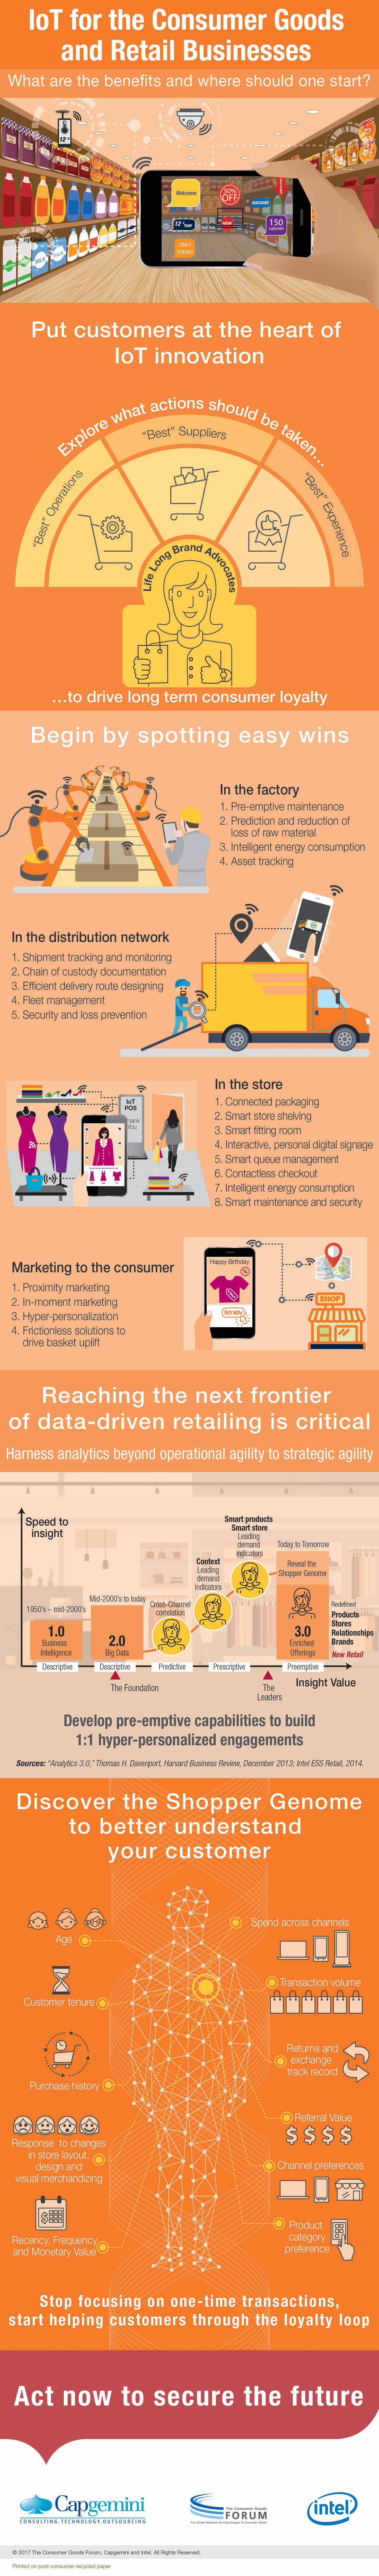 IoT for Consumer Goods and Retail Businesses